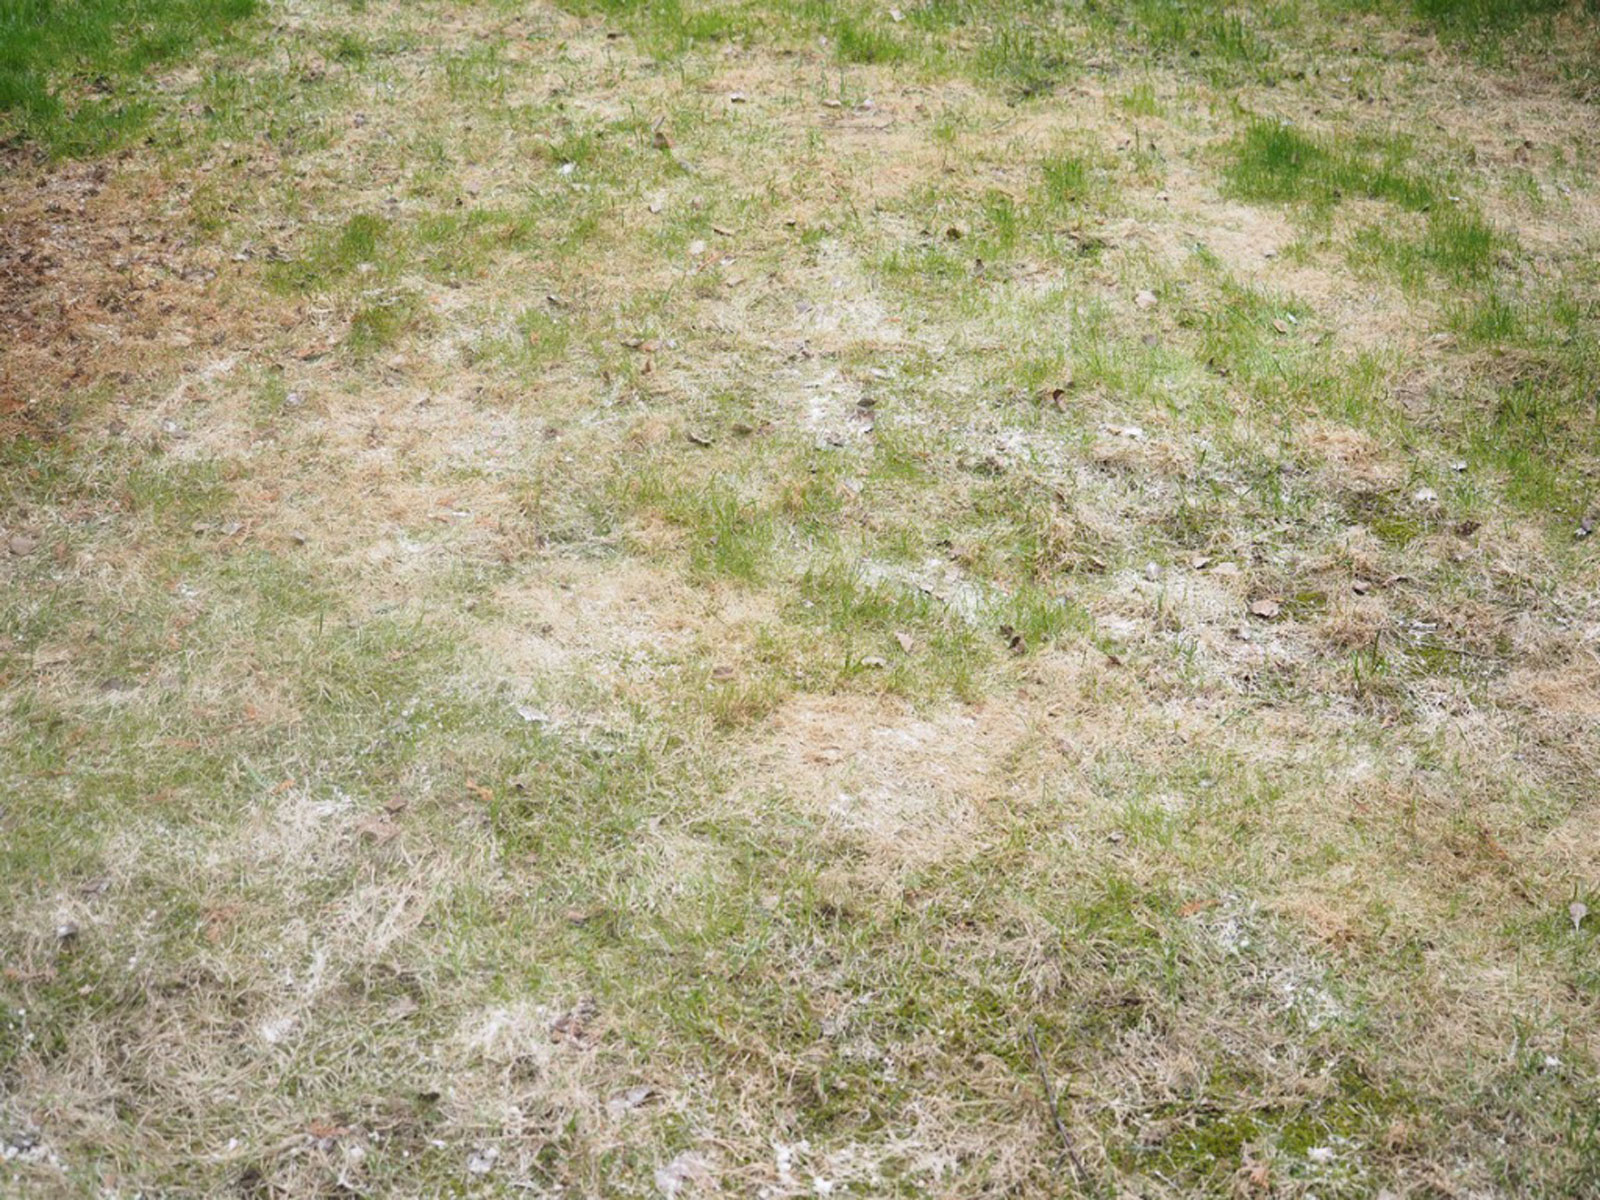 Powdery Mildew Treatment For Lawns What To Do When Grass Has White Powder